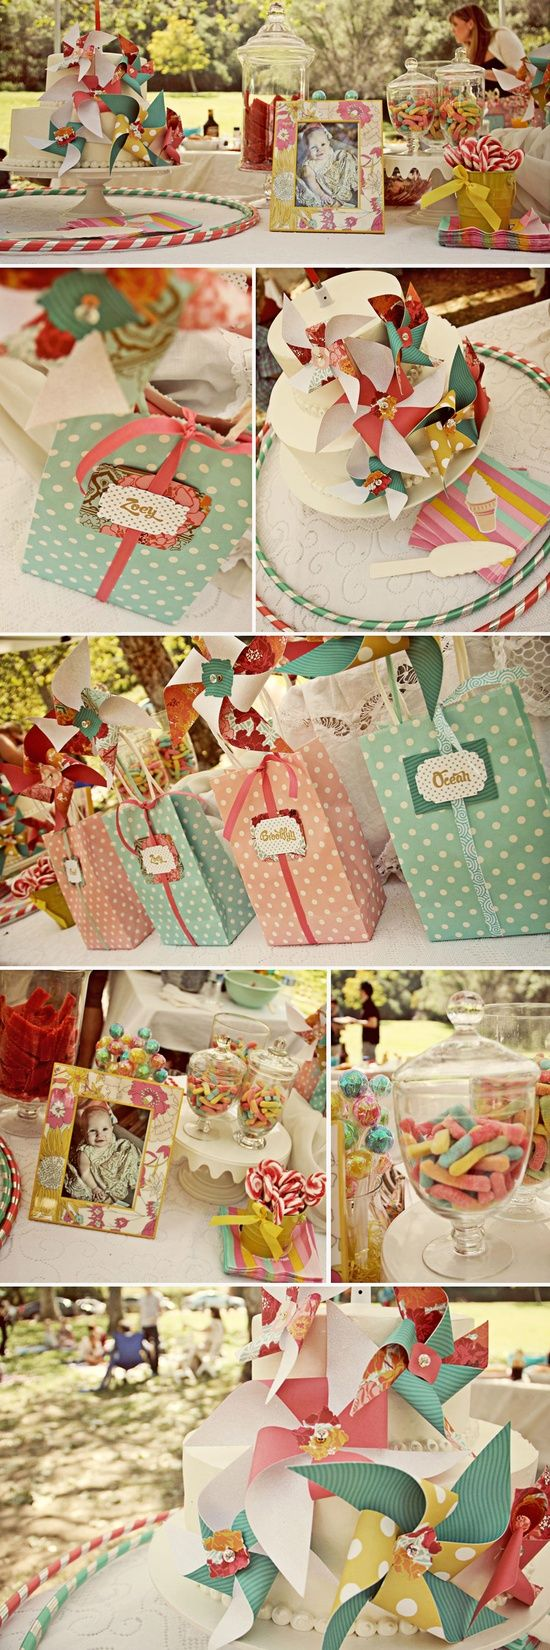 Pinwheel First Birthday Theme - I have a long way to a 1st birthday party, but this is adorable, and I love the colors!